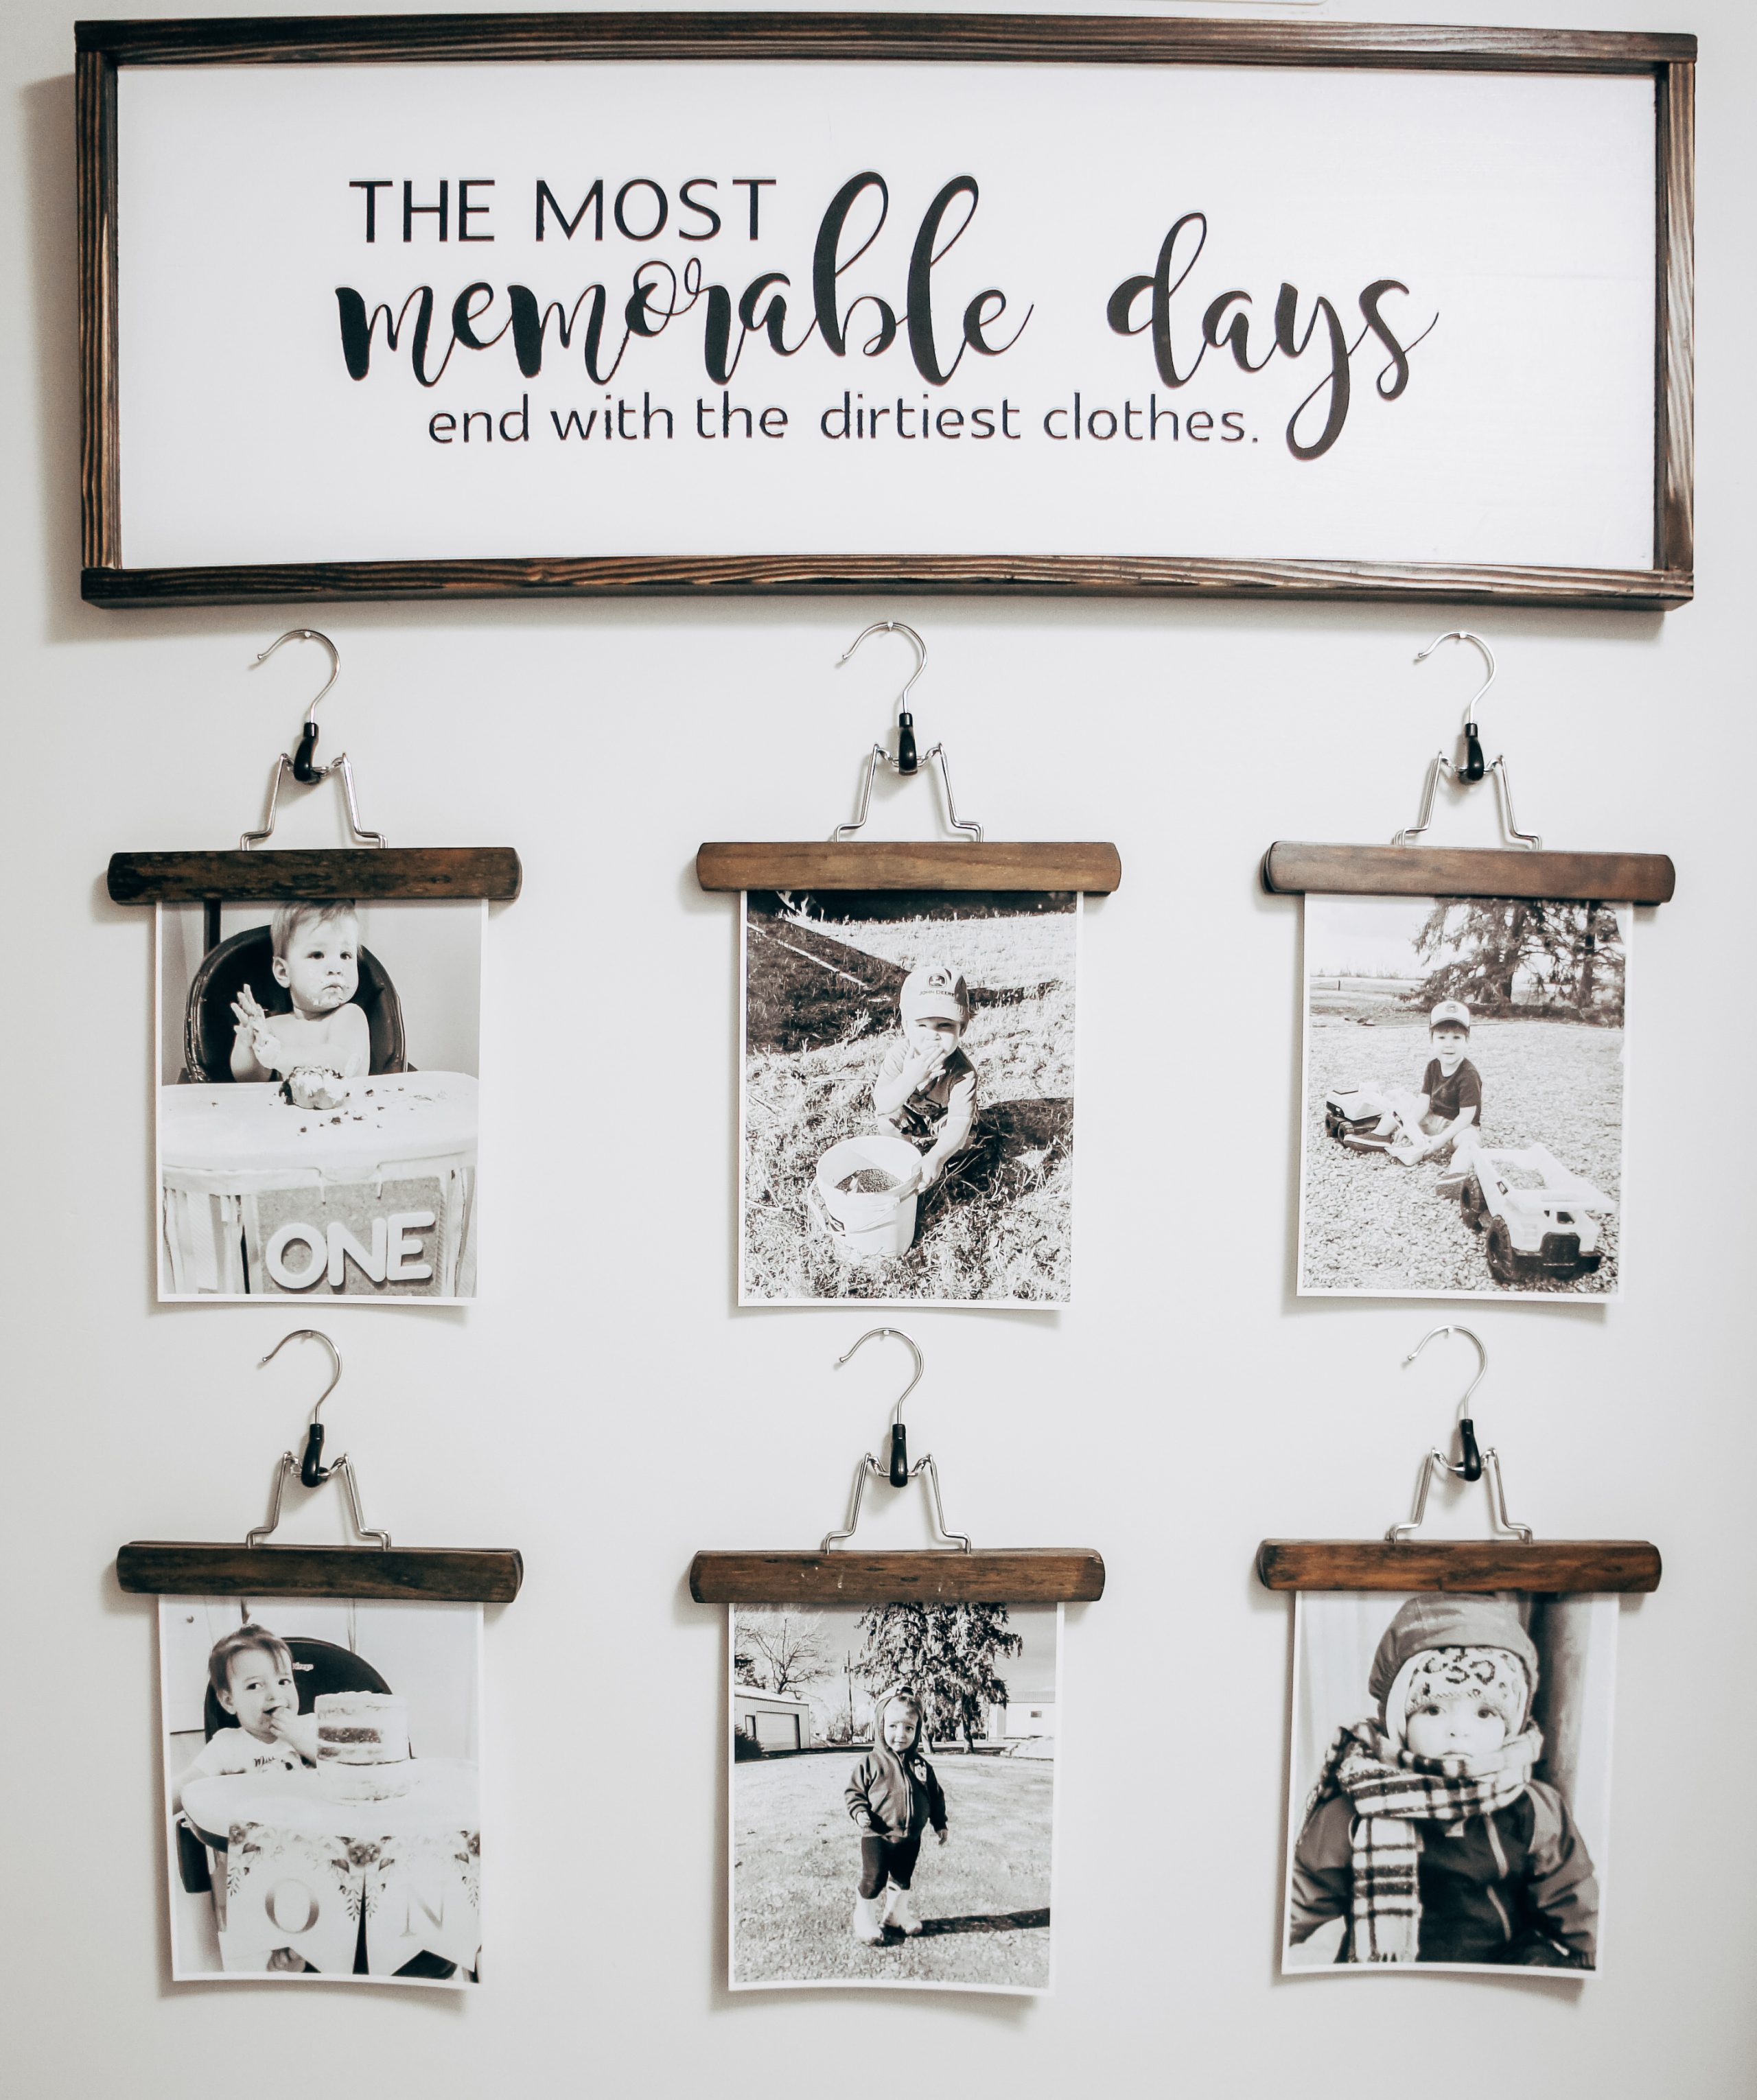 Do you love those farmhouse signs? You know the ones with the wood frame, white background and your favourite saying. Today I am going to show you how to DIY a farmhouse sign for a fraction of the price! #diylaundryroom #diydecor #farmhousedecor #diyhomedecor #laundryroominspo